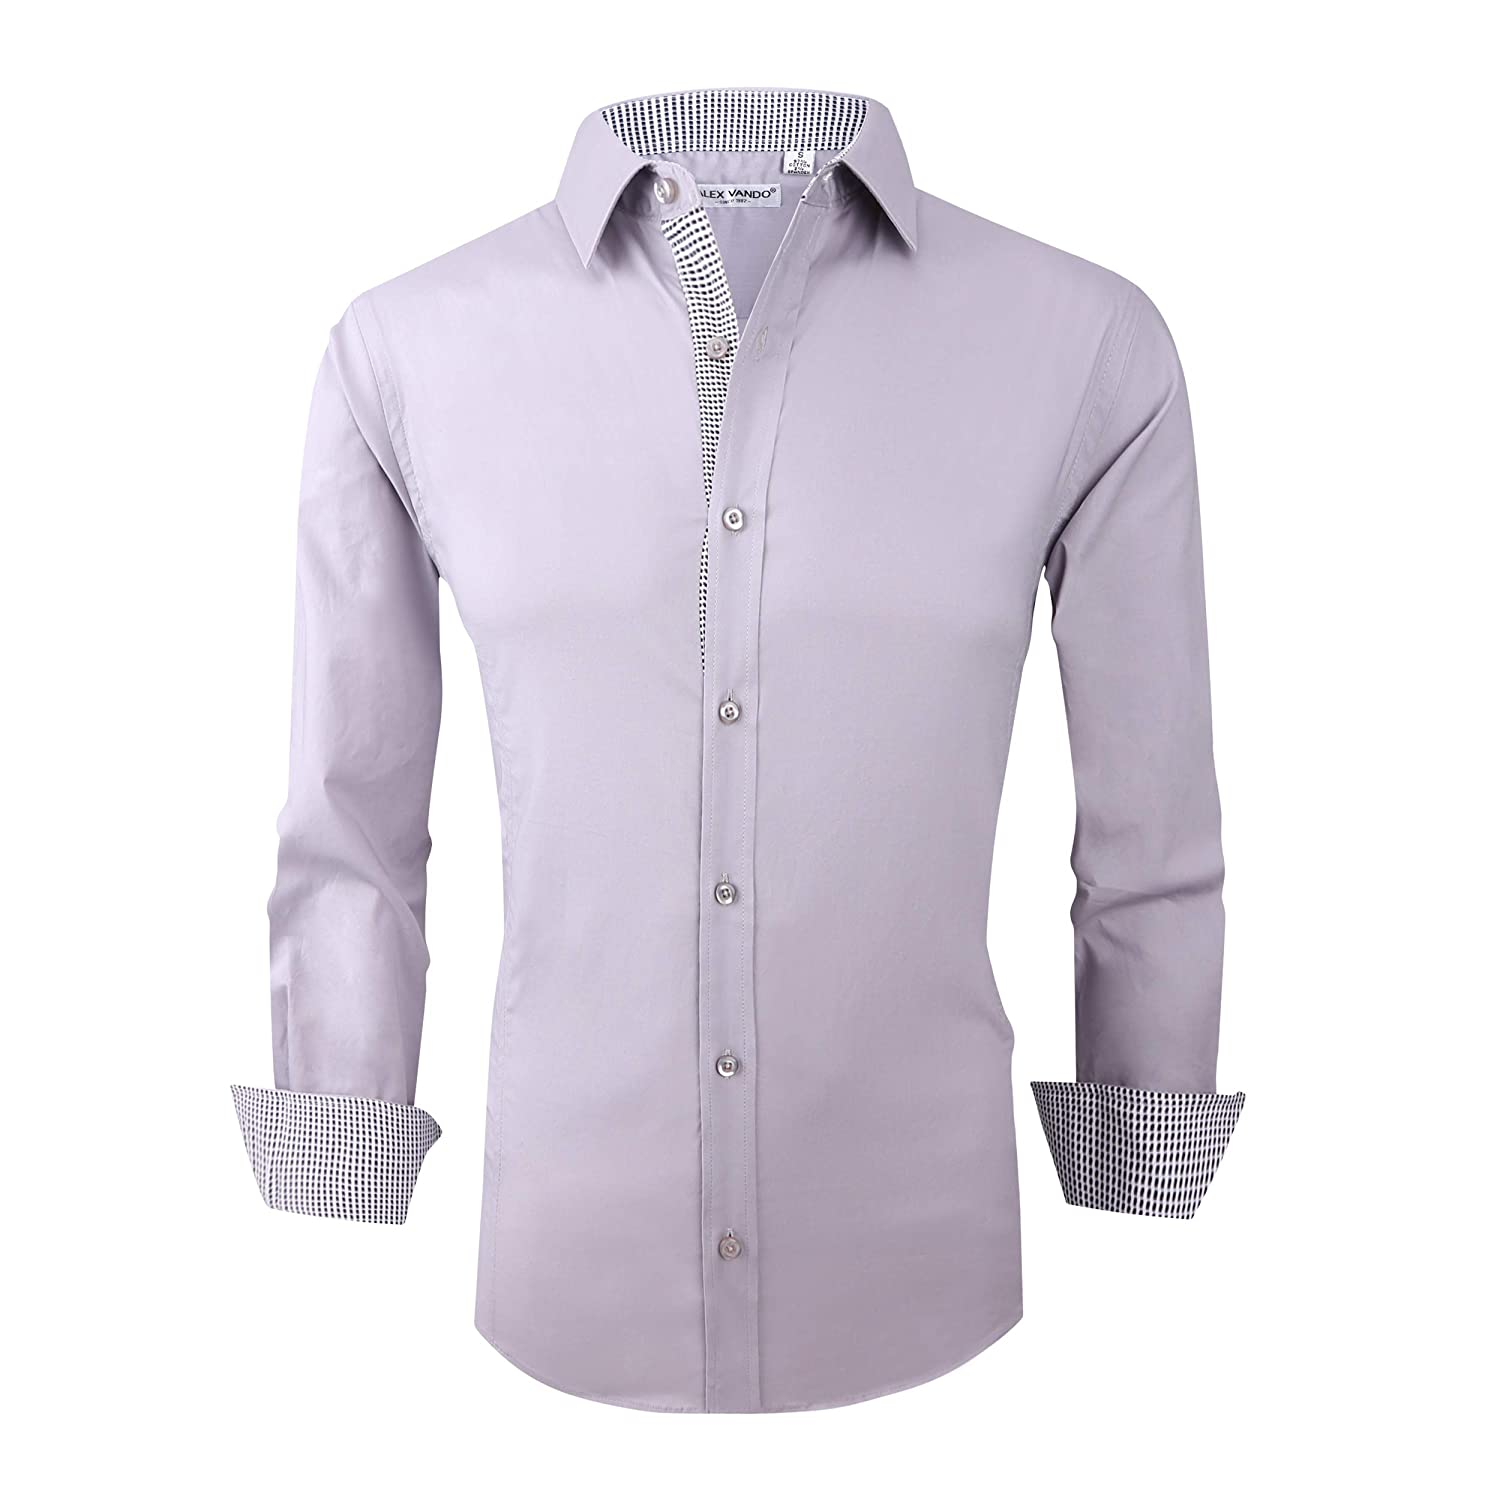 Alex Vando Mens Dress Shirts Regular Fit Long Sleeve Men Shirt At